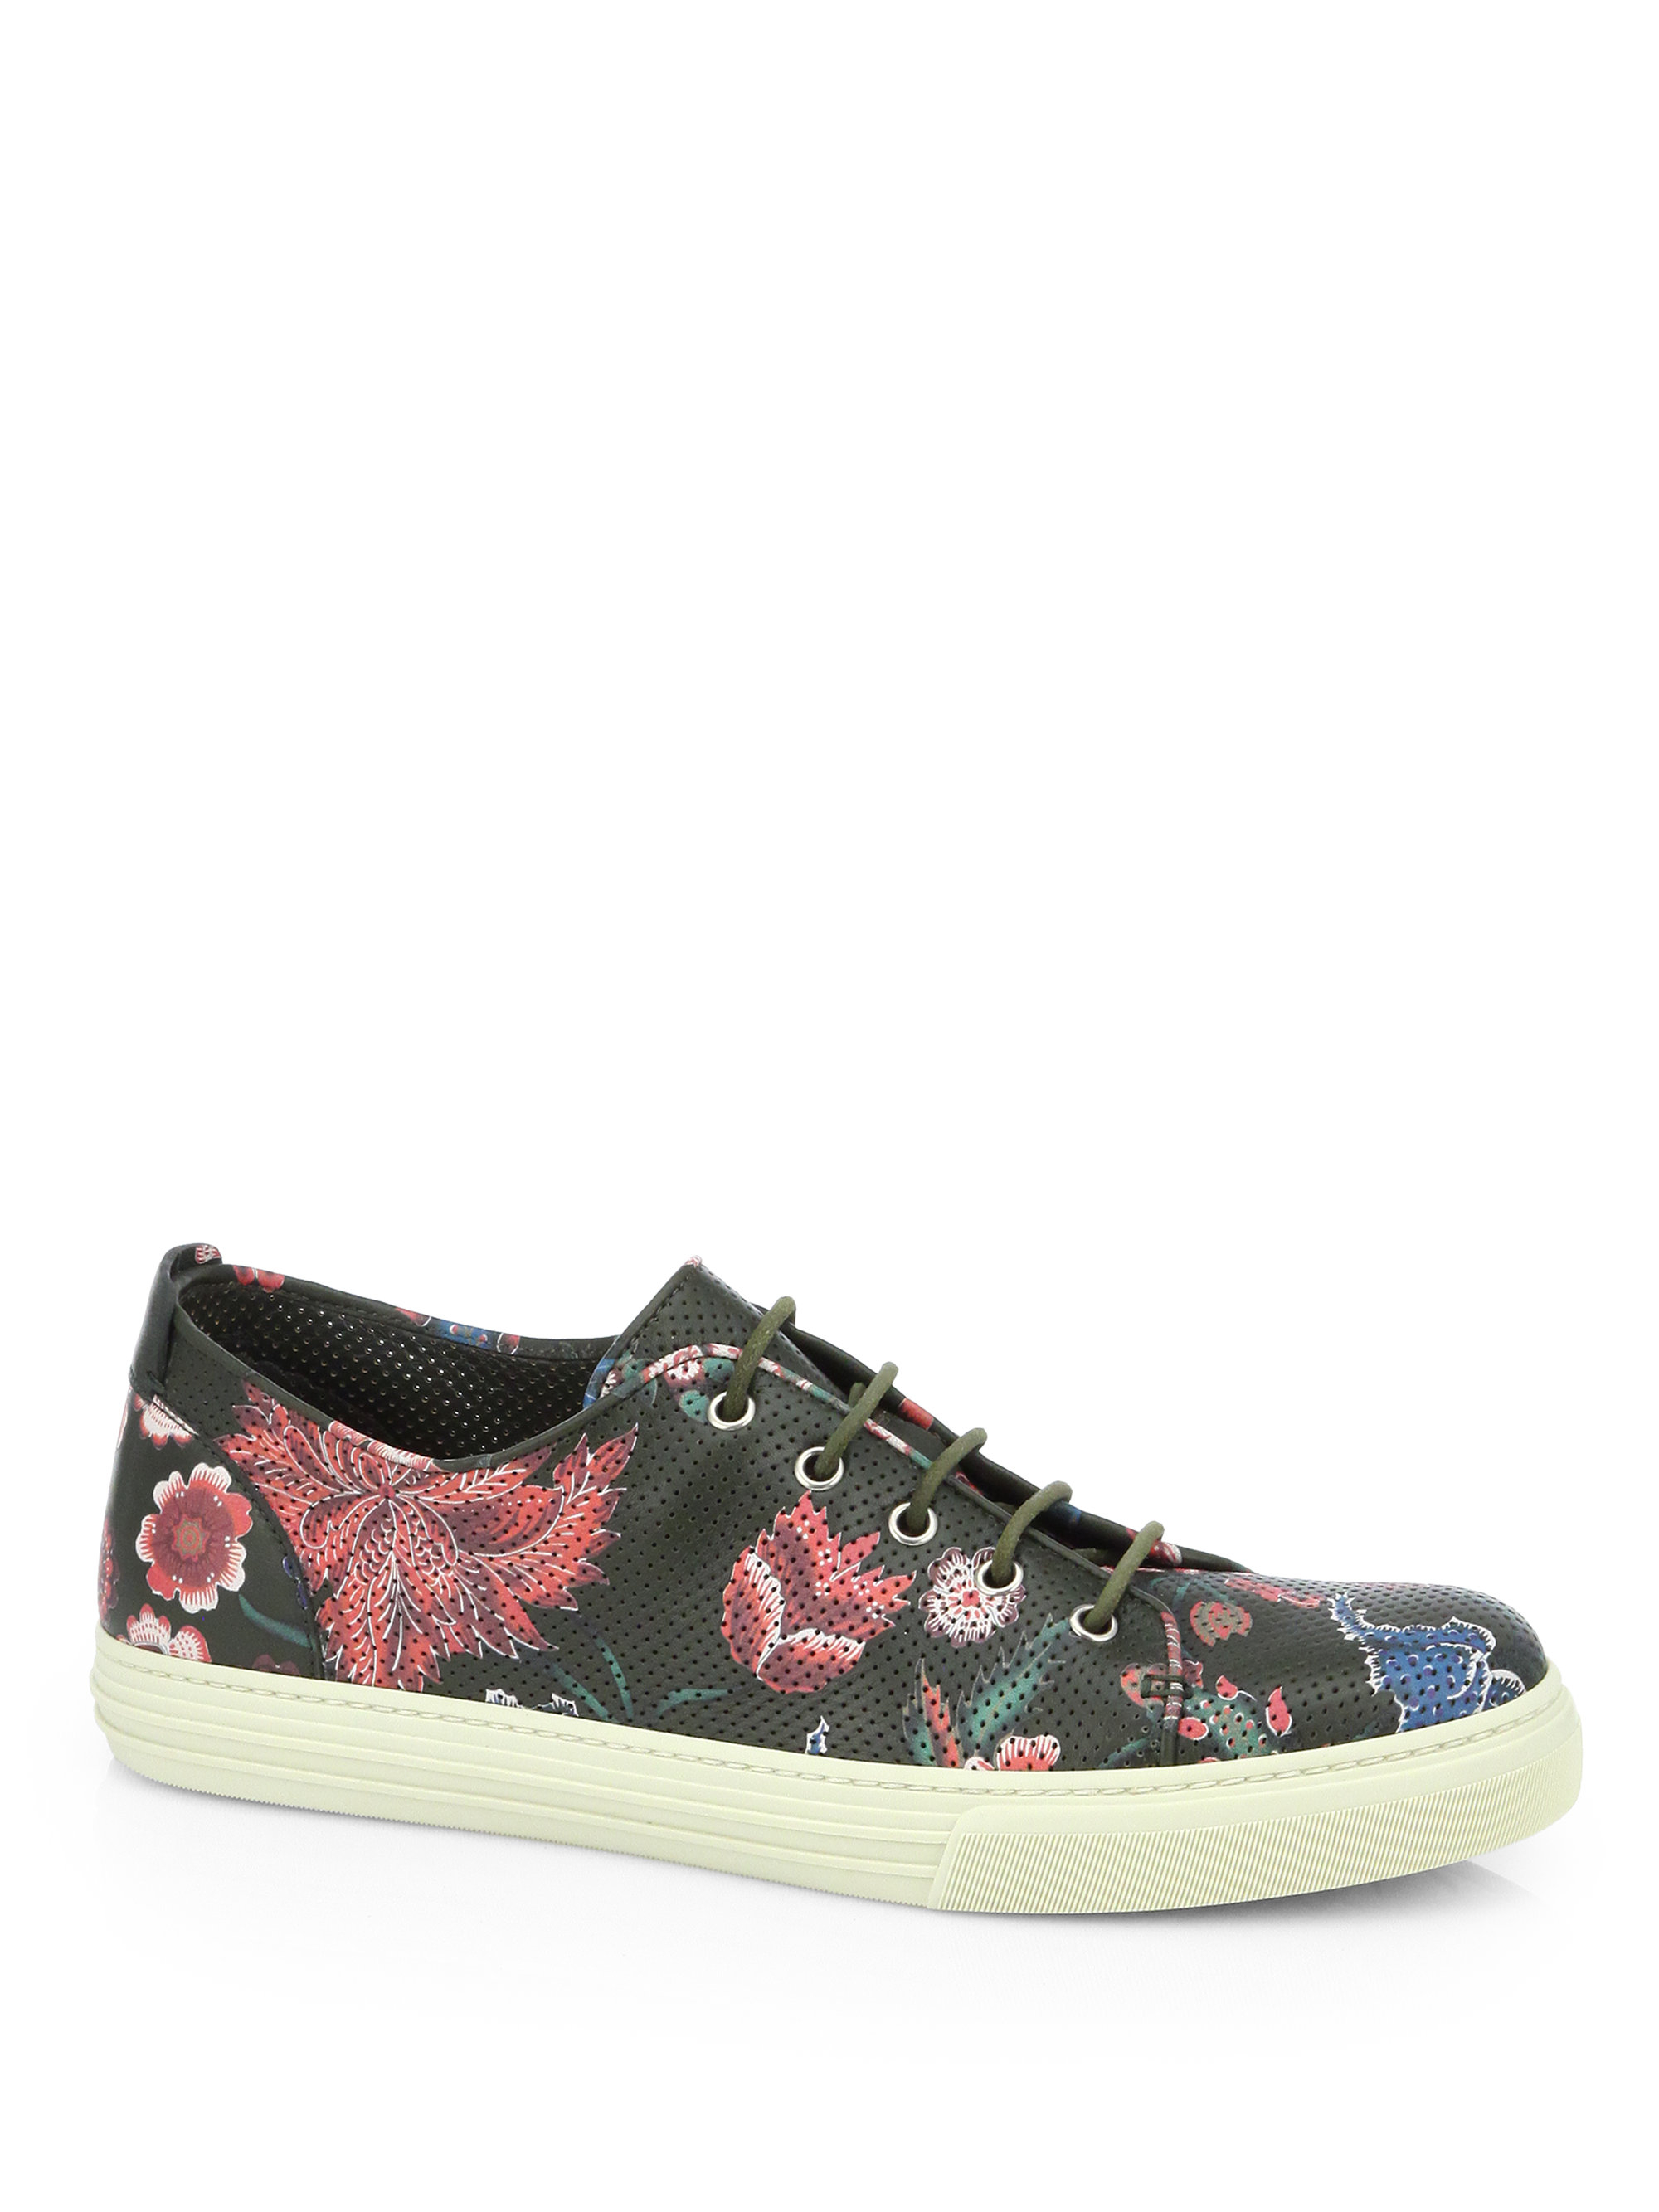 Gucci Flower Print Leather Lowtop Sneakers In Green Lyst